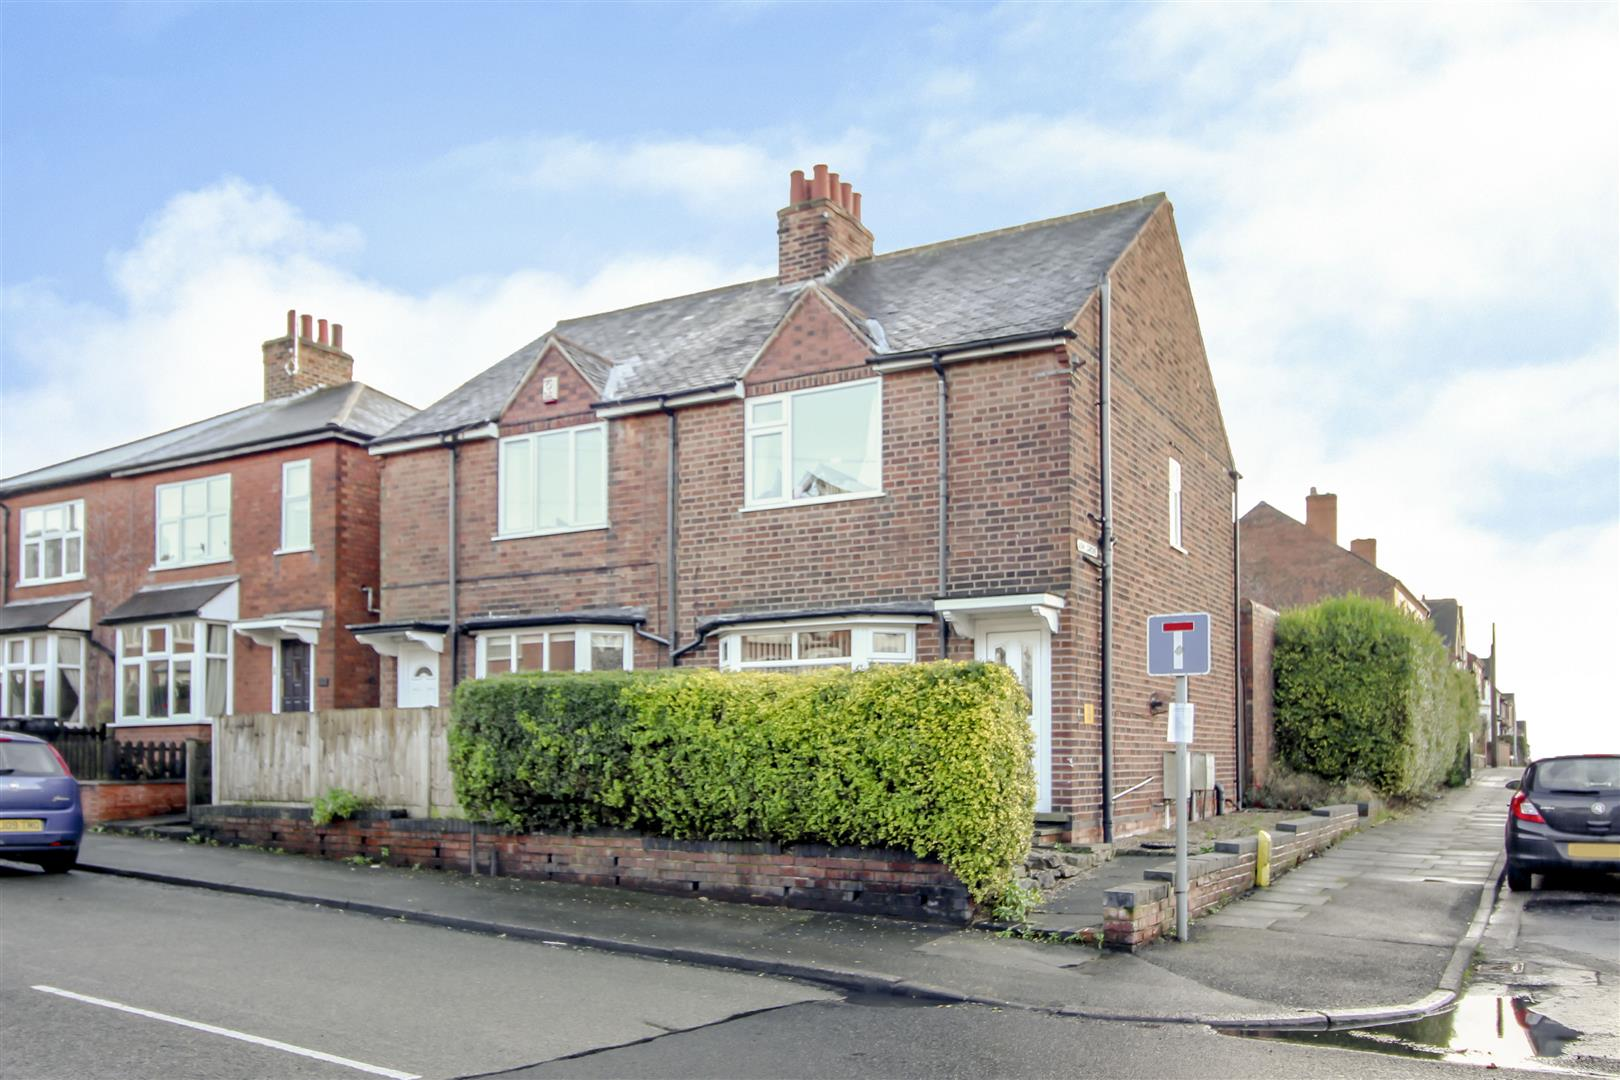 3 Bedrooms House for sale in Brookhill Street, Stapleford